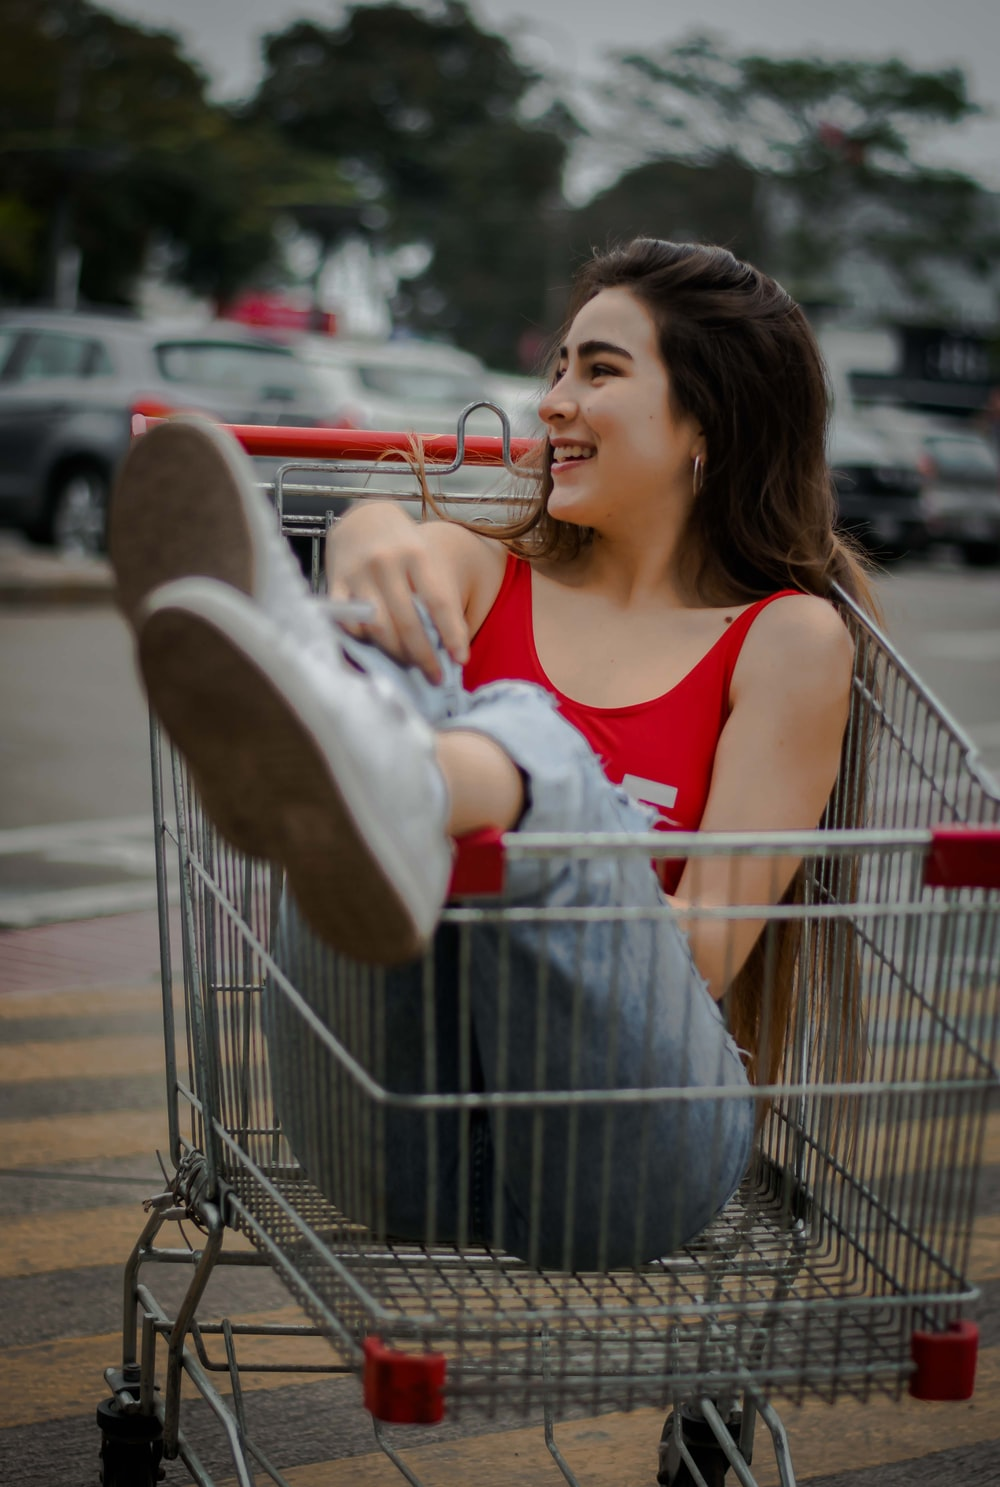 shallow focus photography of woman inside grocery cart trolley